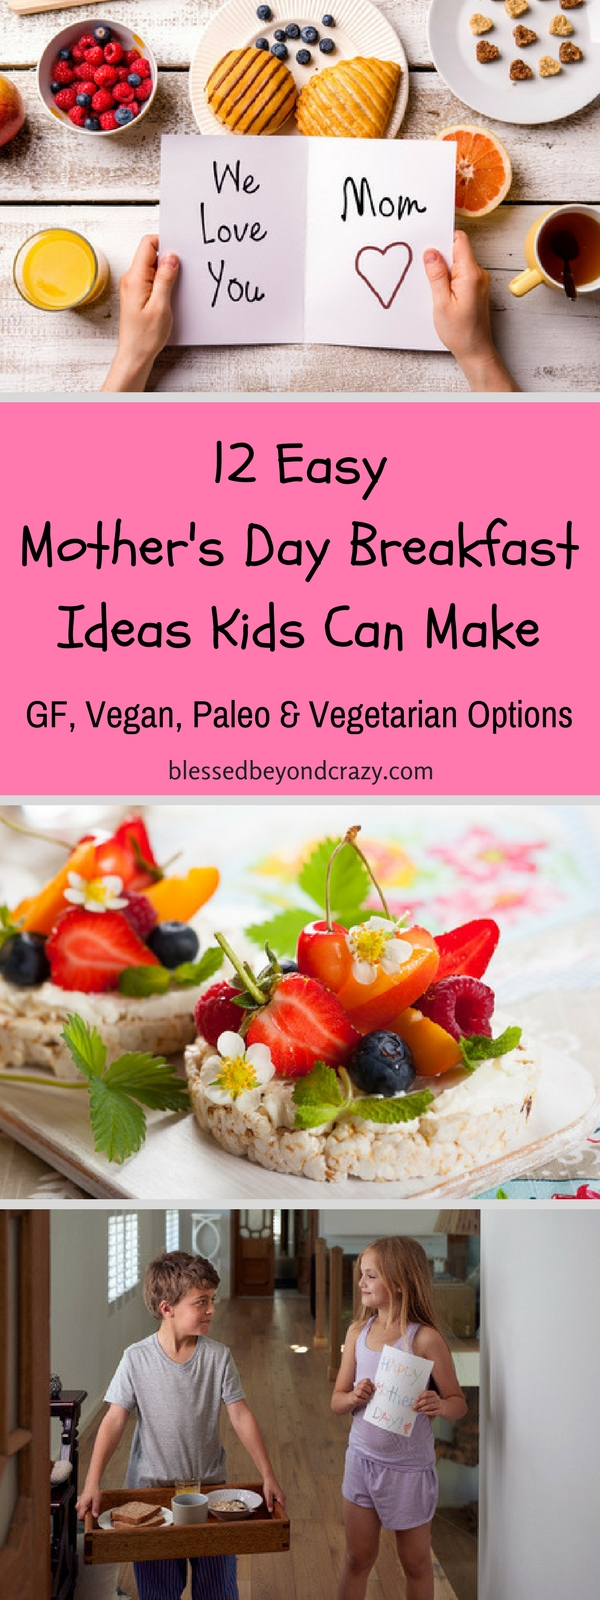 12 Easy Mother's Day Breakfast Ideas Kids Can Make